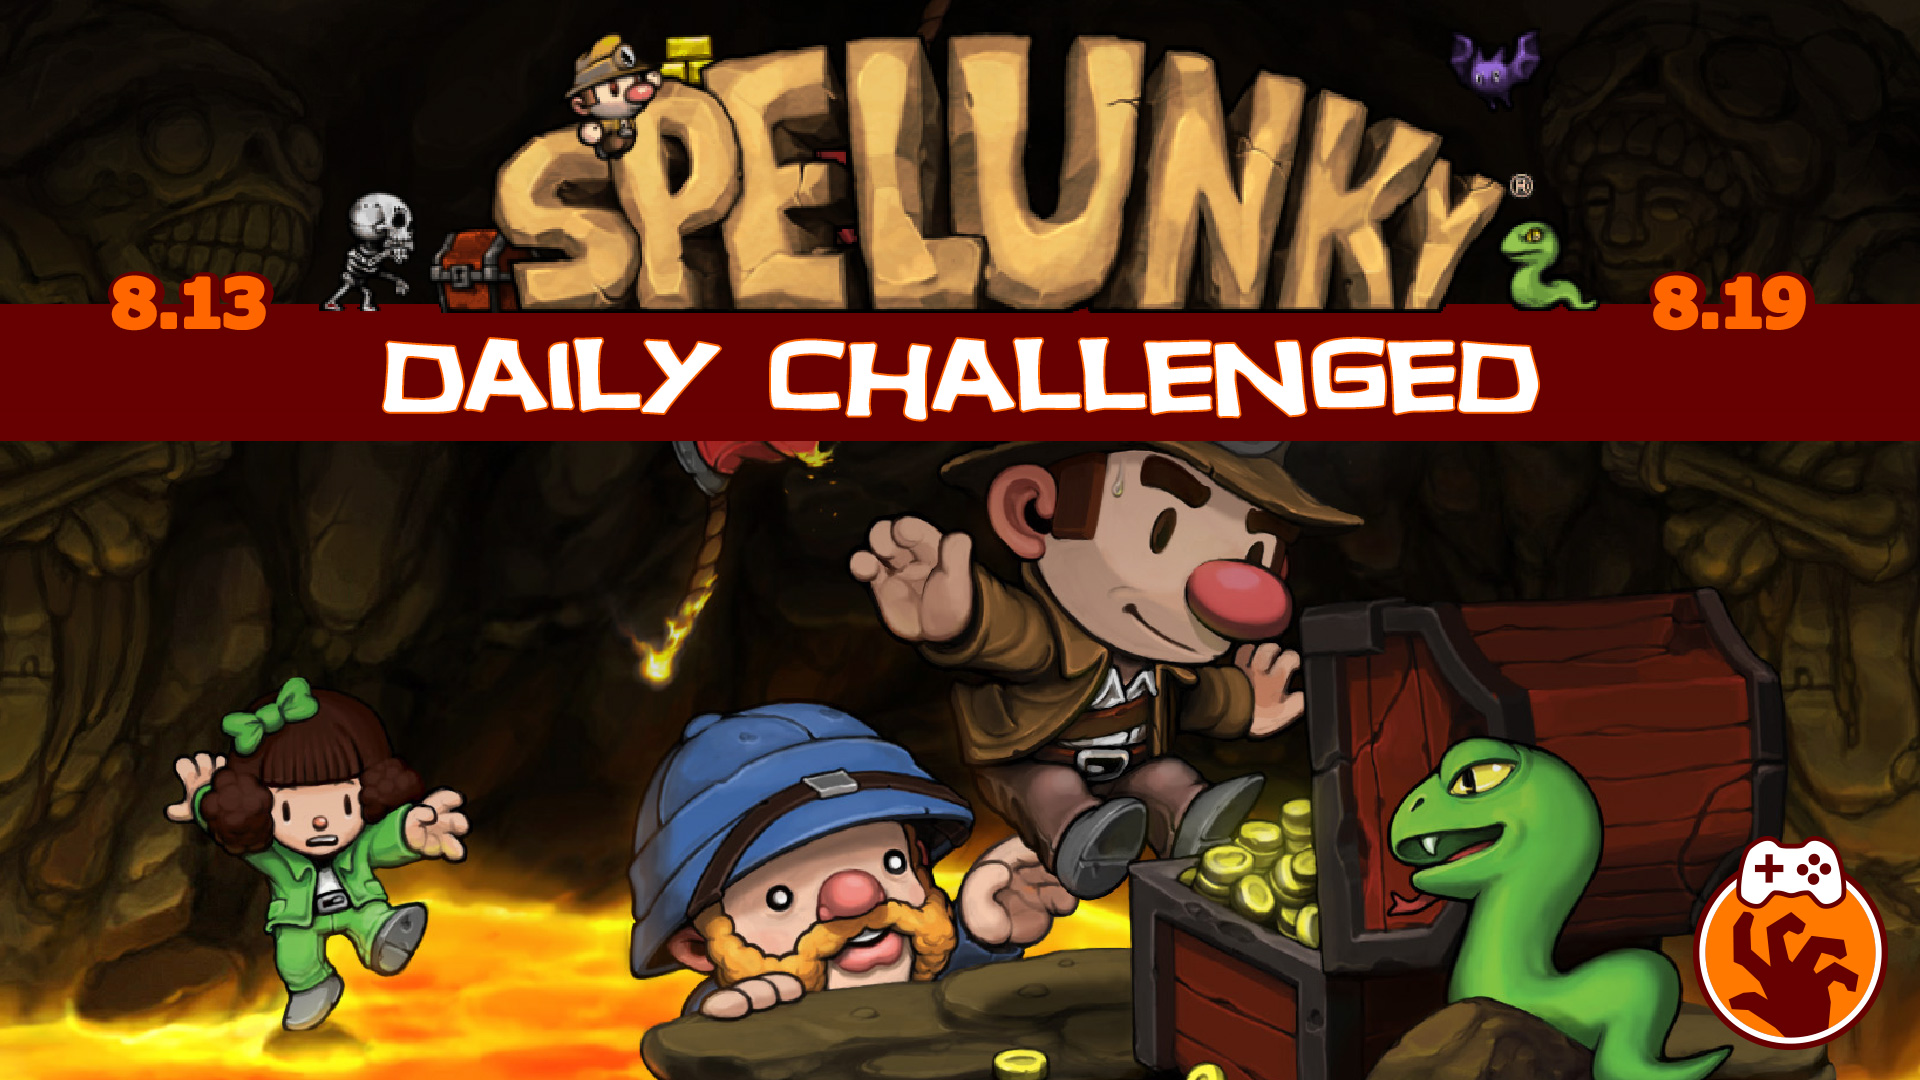 Spelunky Daily Challenged Week #1 Highlight (Death) Reel with JDevL